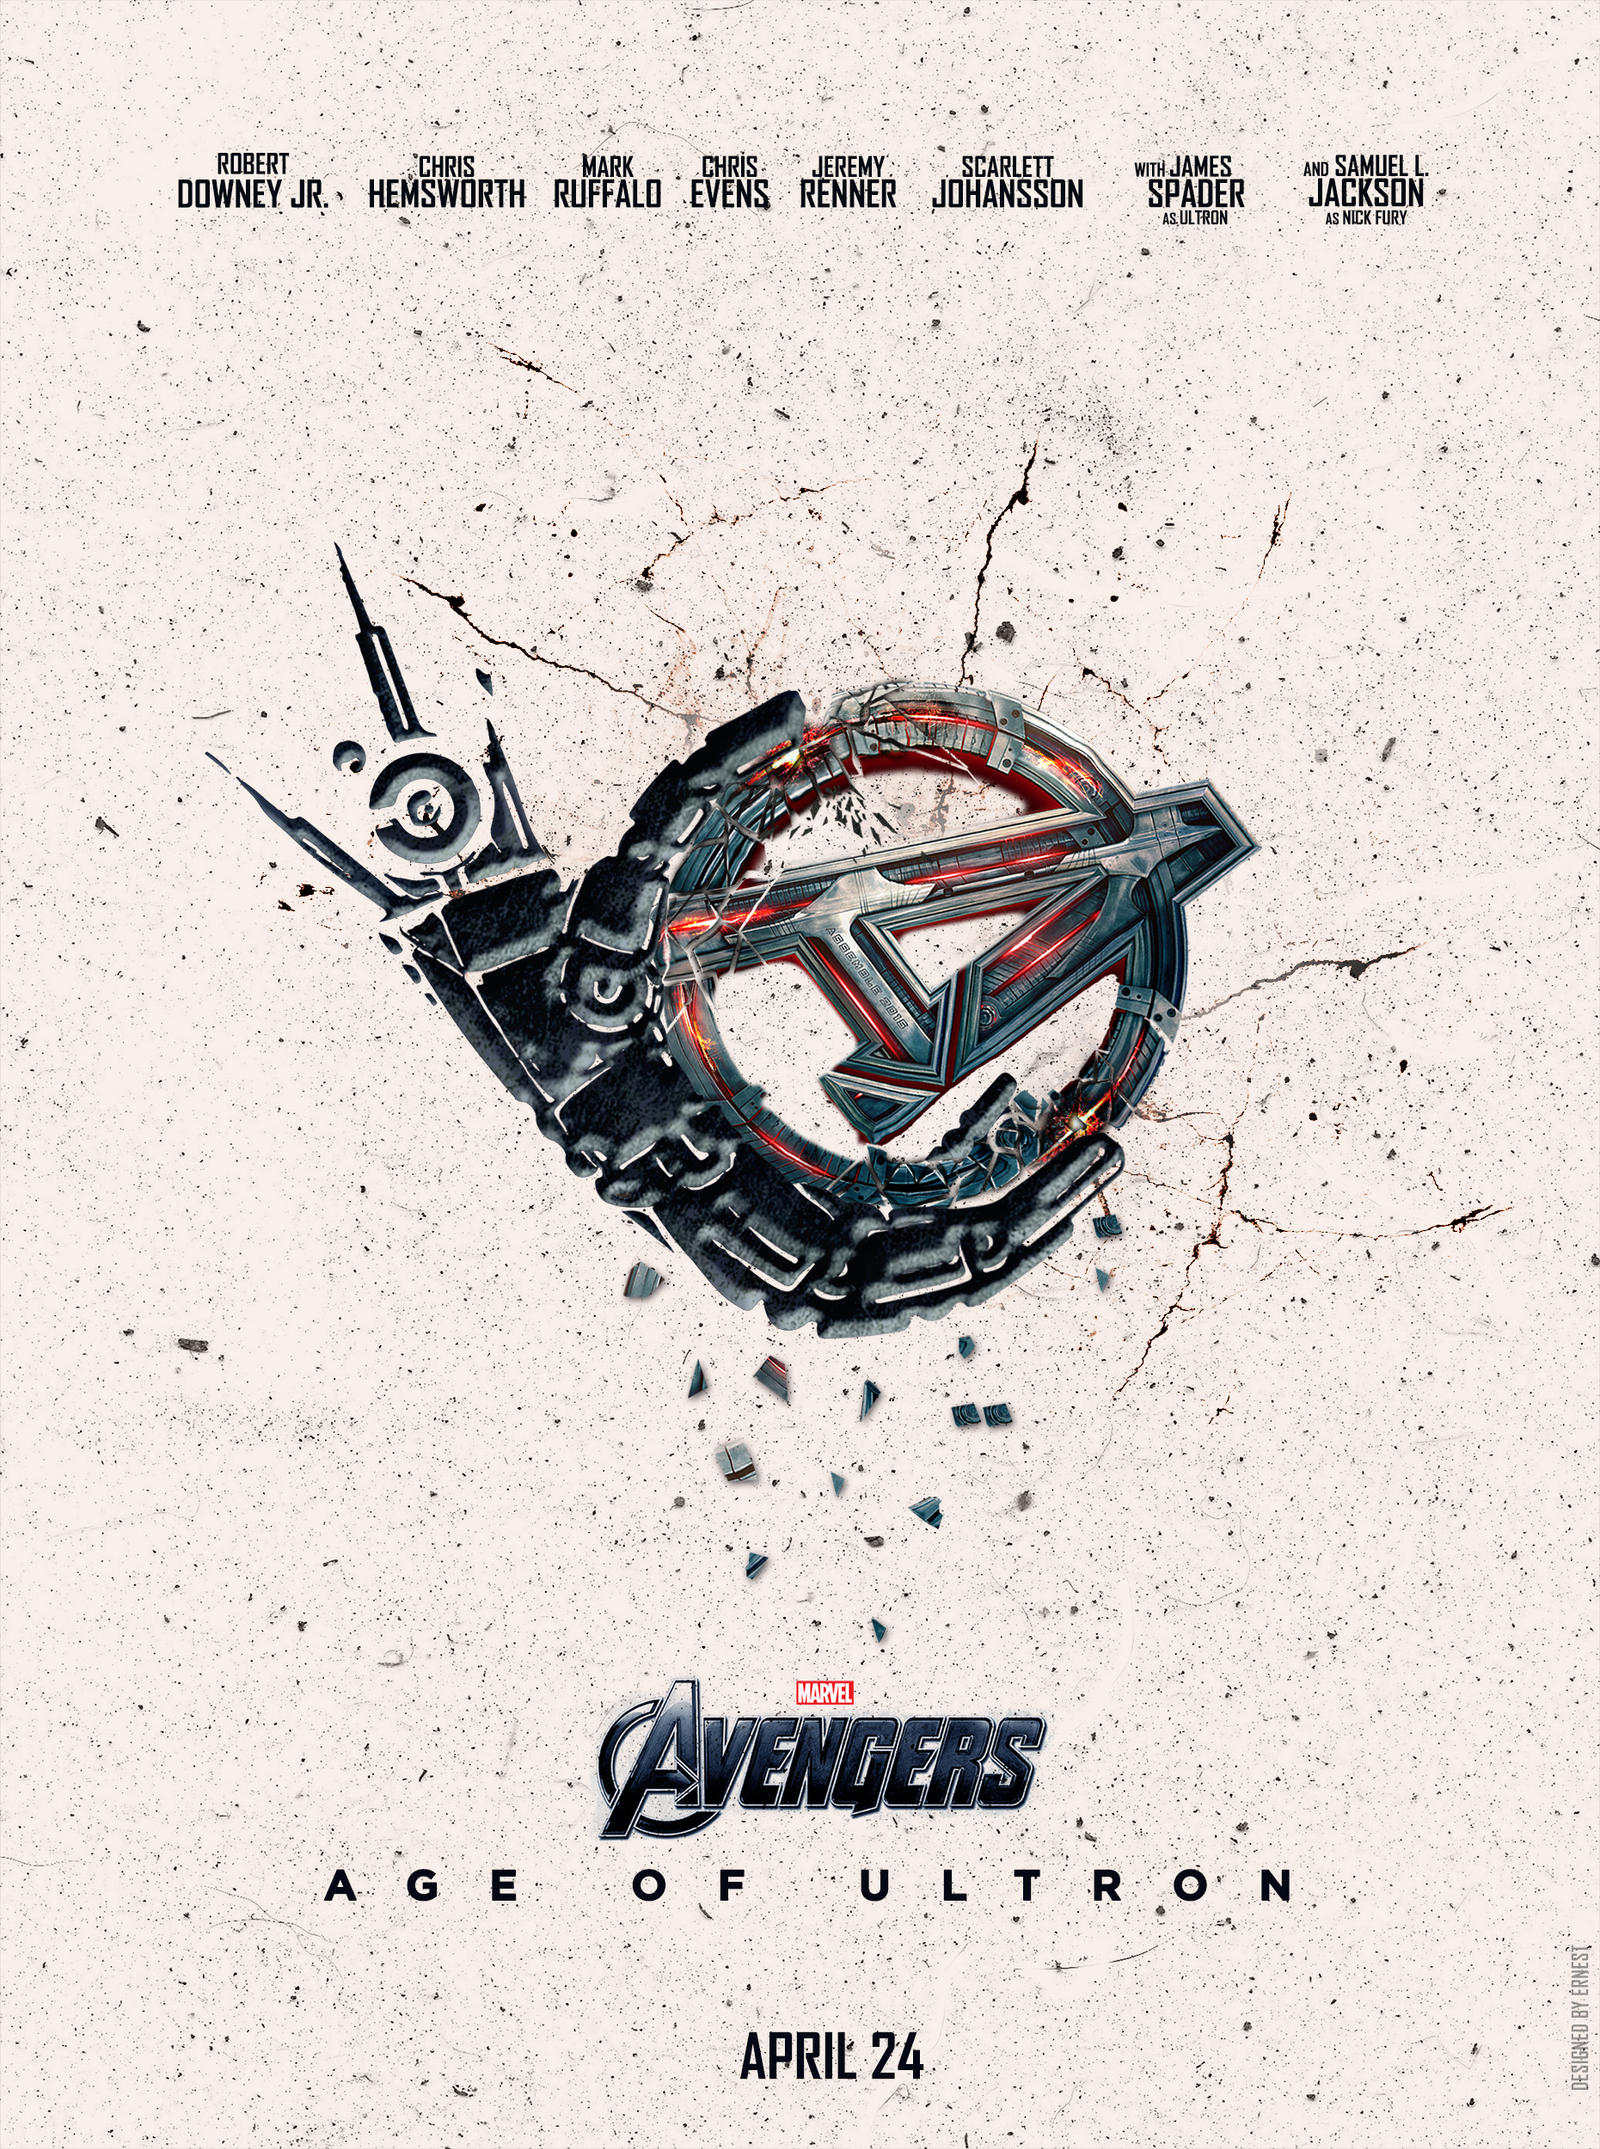 Avengers Age Of Ultron By Iloegbunam On Deviantart: Avengers: Age Of Ultron Teaser Poster By Ernest93 On